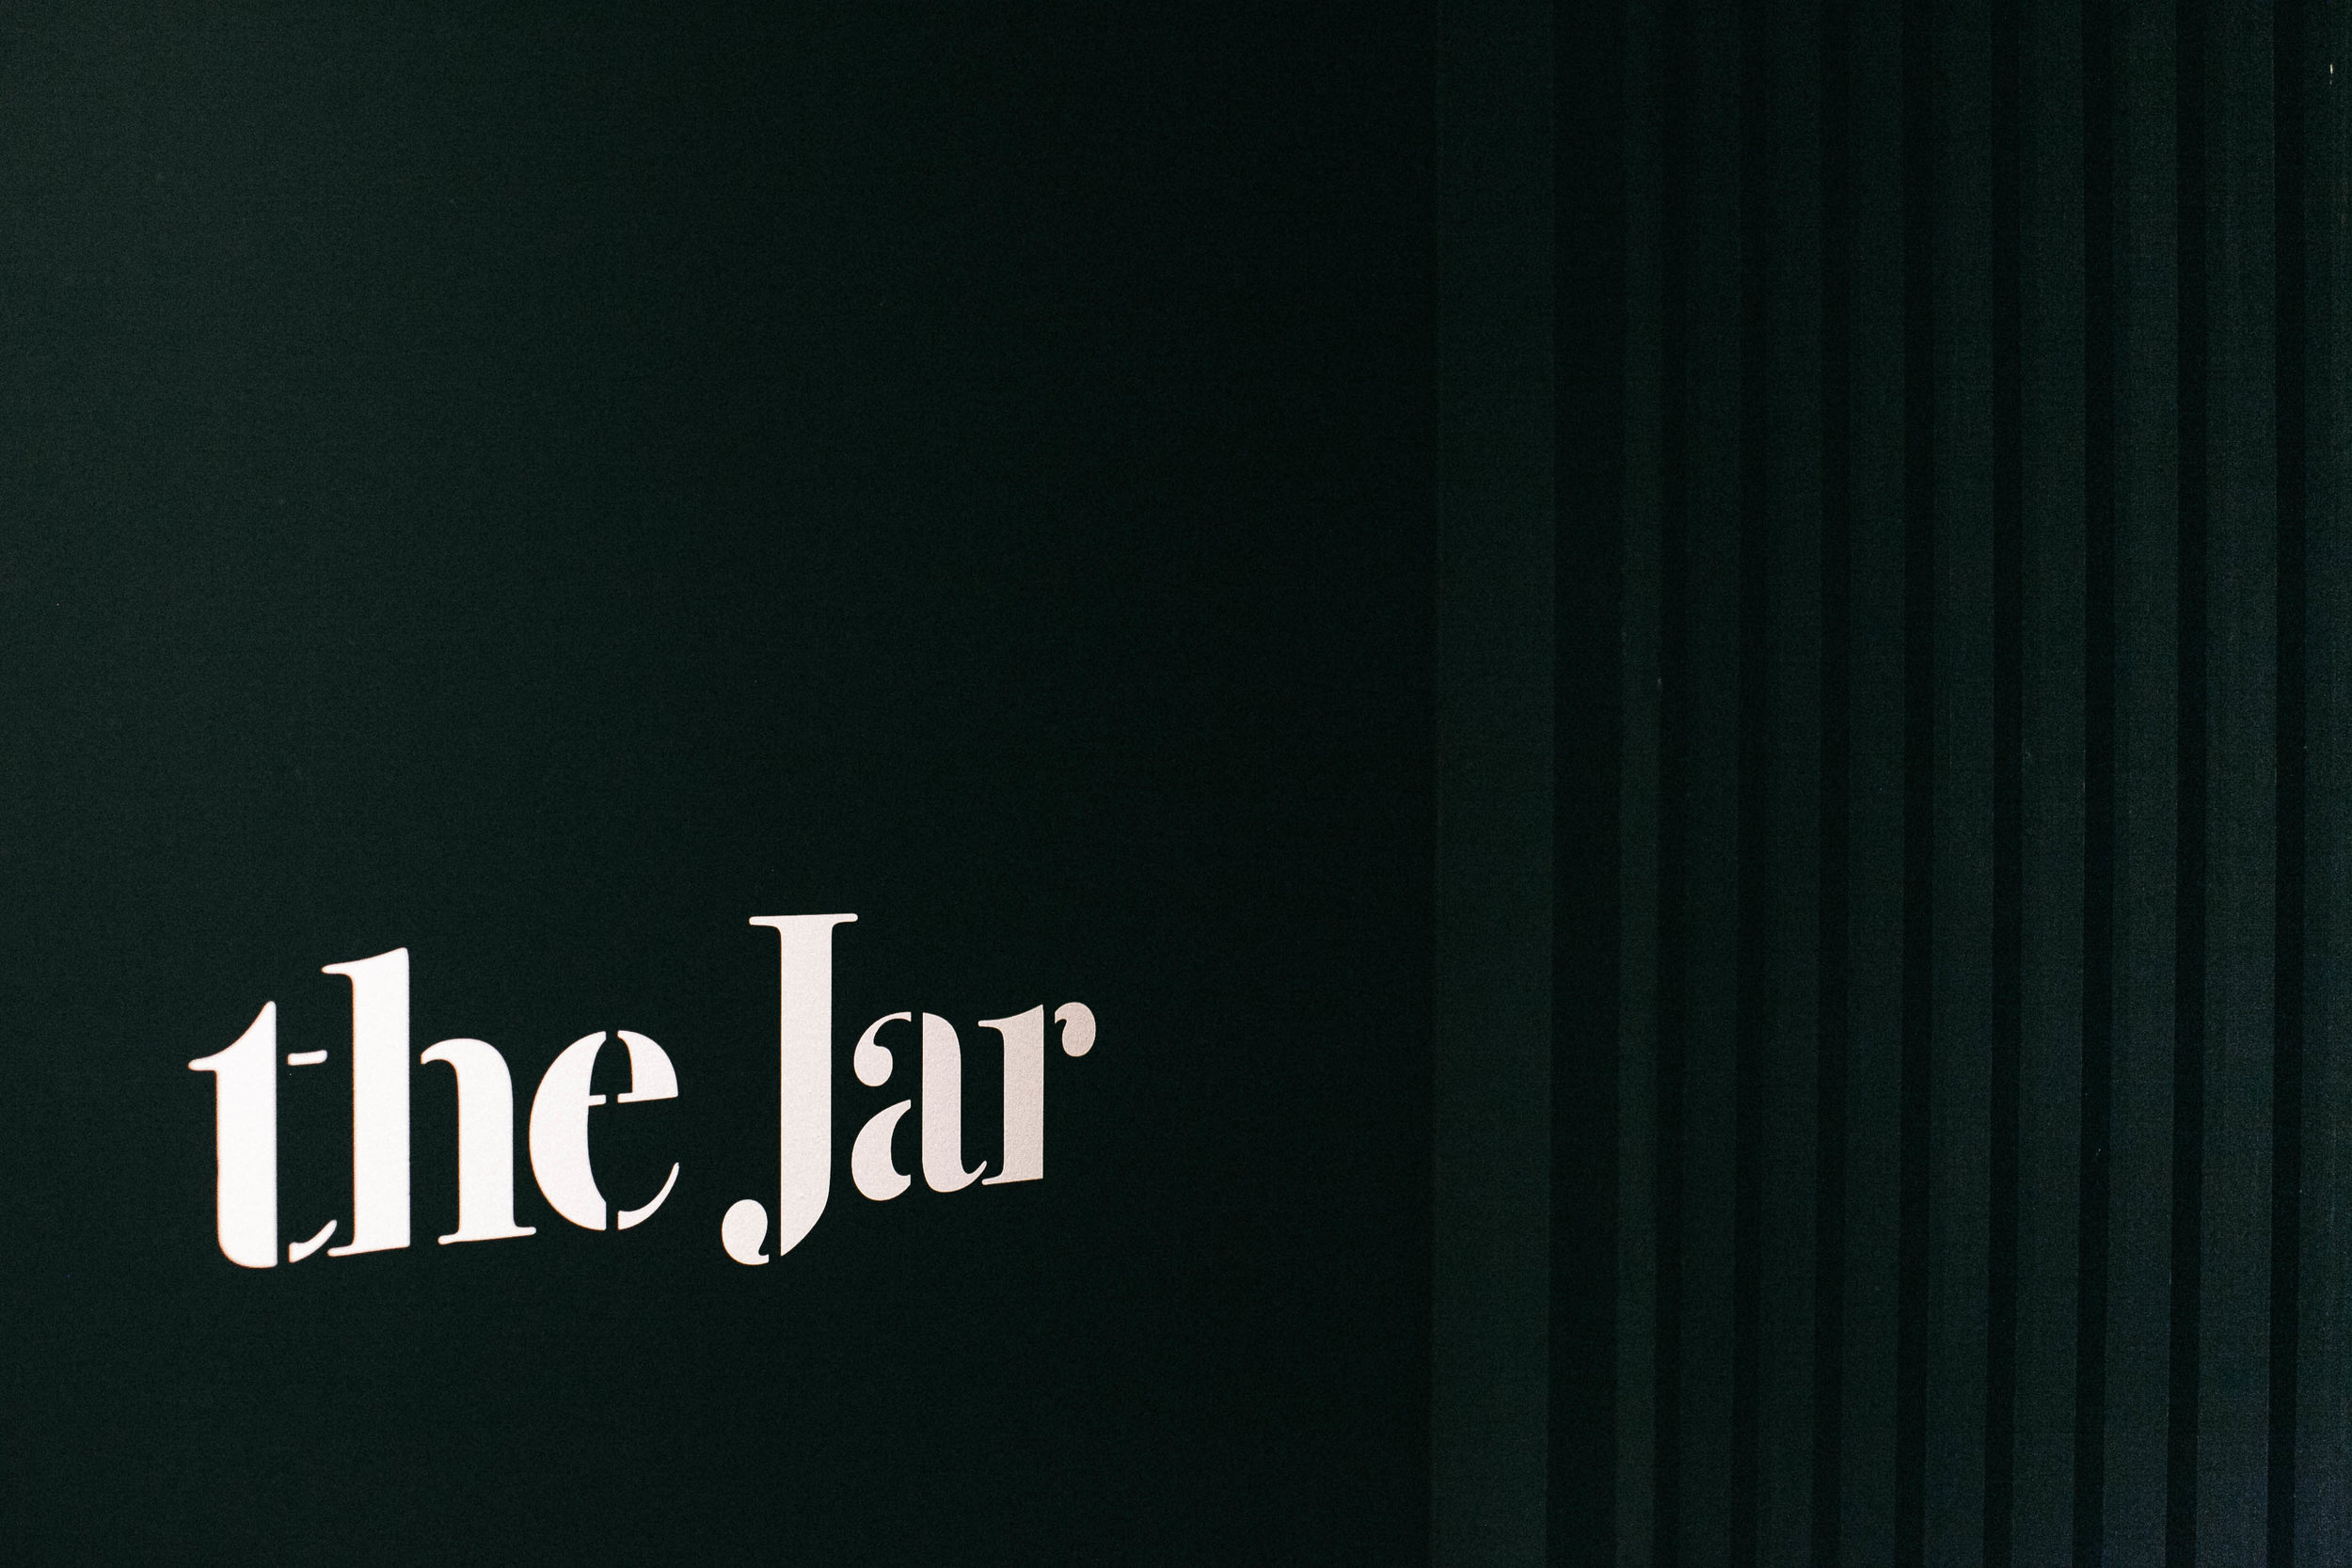 Branding signage design for The Jar, by brennan & stevens